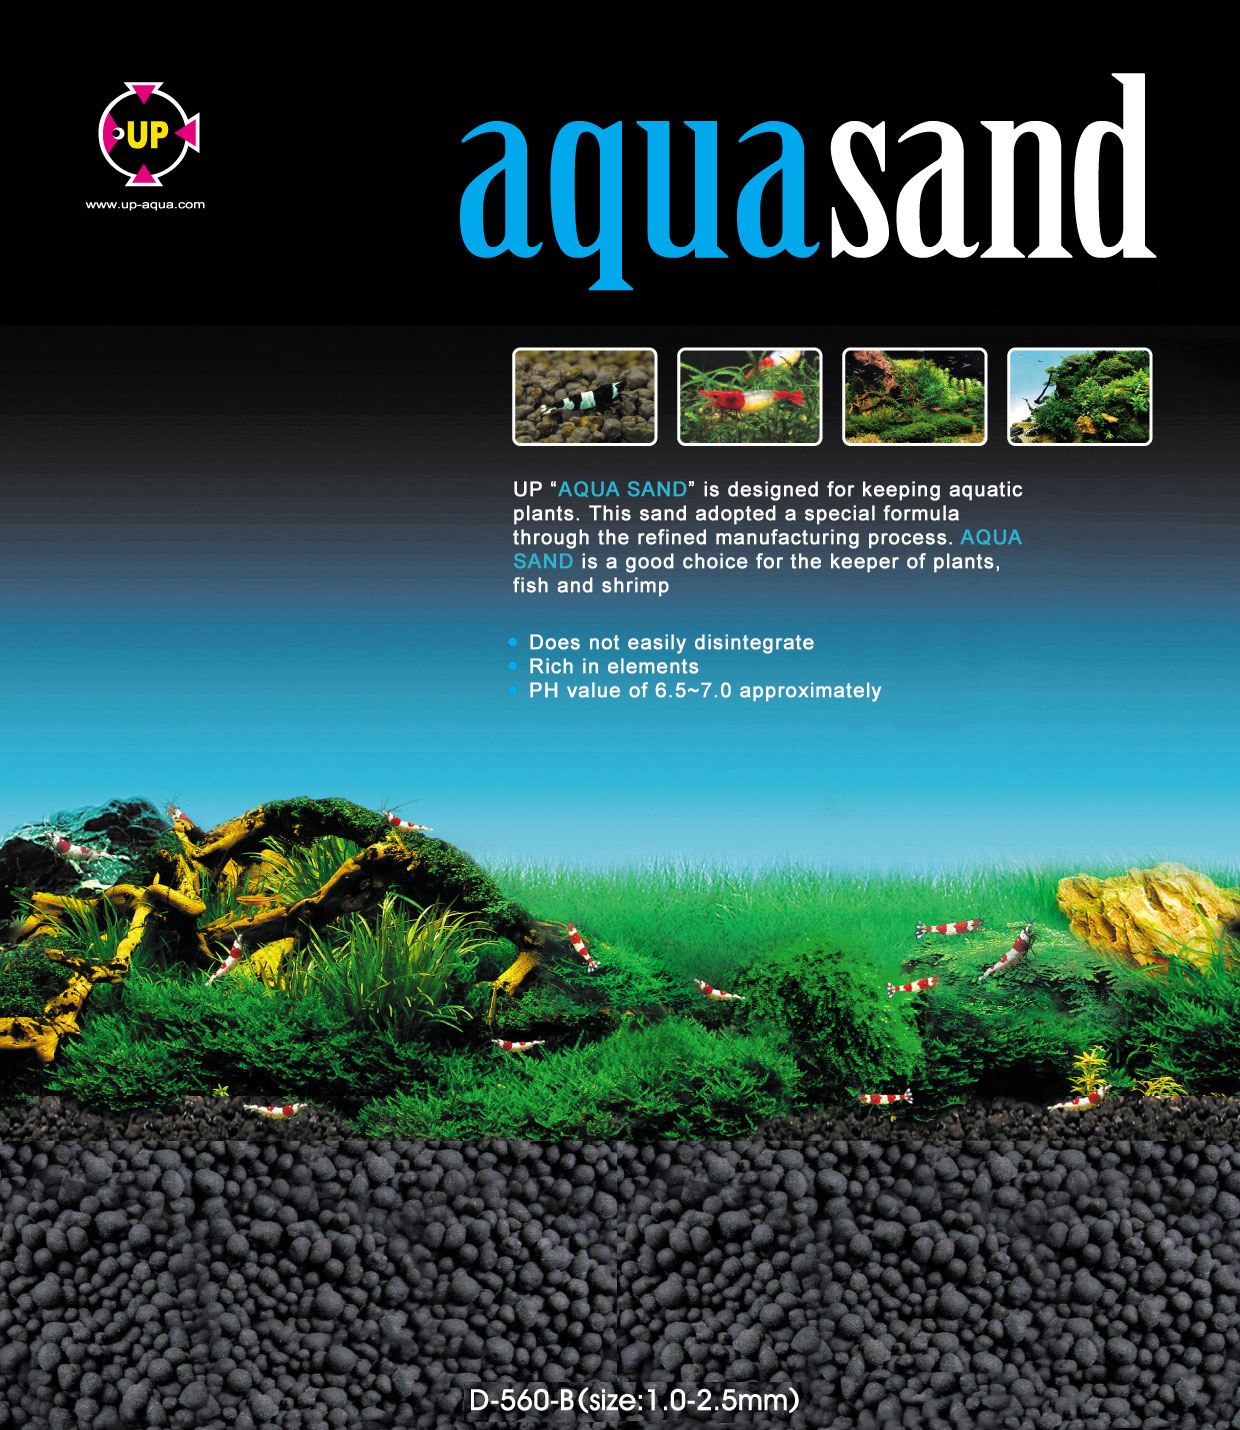 00dm-140-aquasand-big-1-.jpg